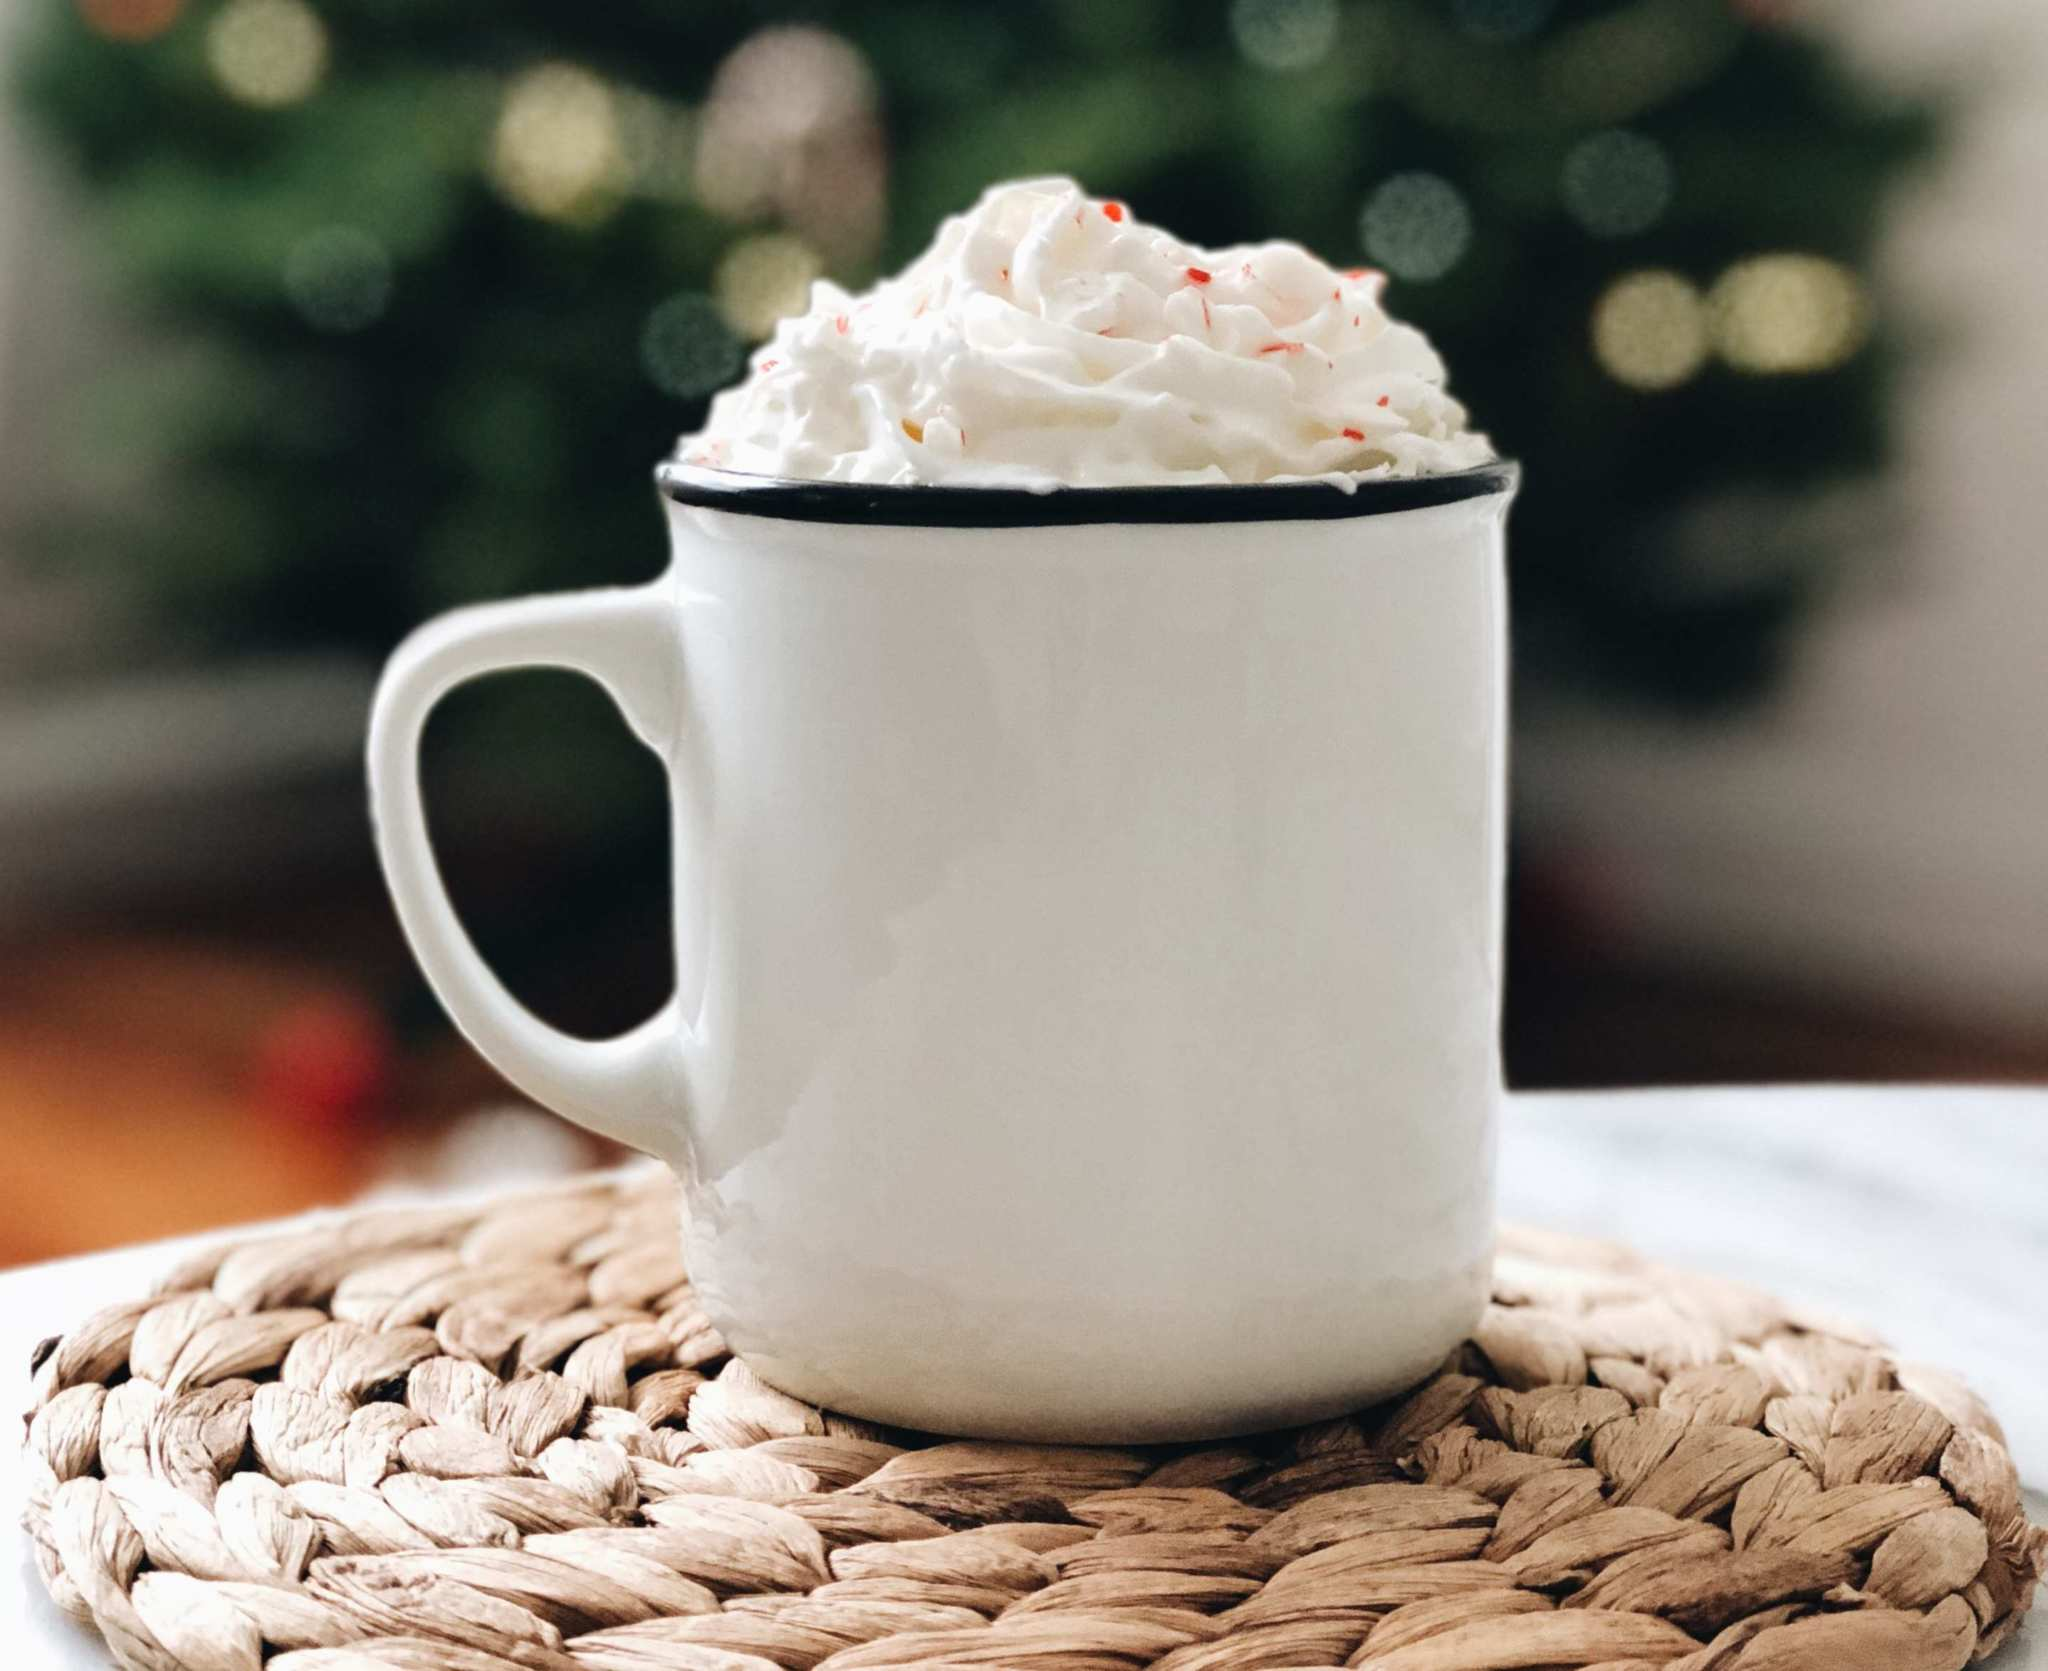 A mug of hot chocolate with whip cream, with a Christmas tree in the background. Our CBD hot cocoa recipe will warm you up and soothe away the stress of chasing the perfect gifts.